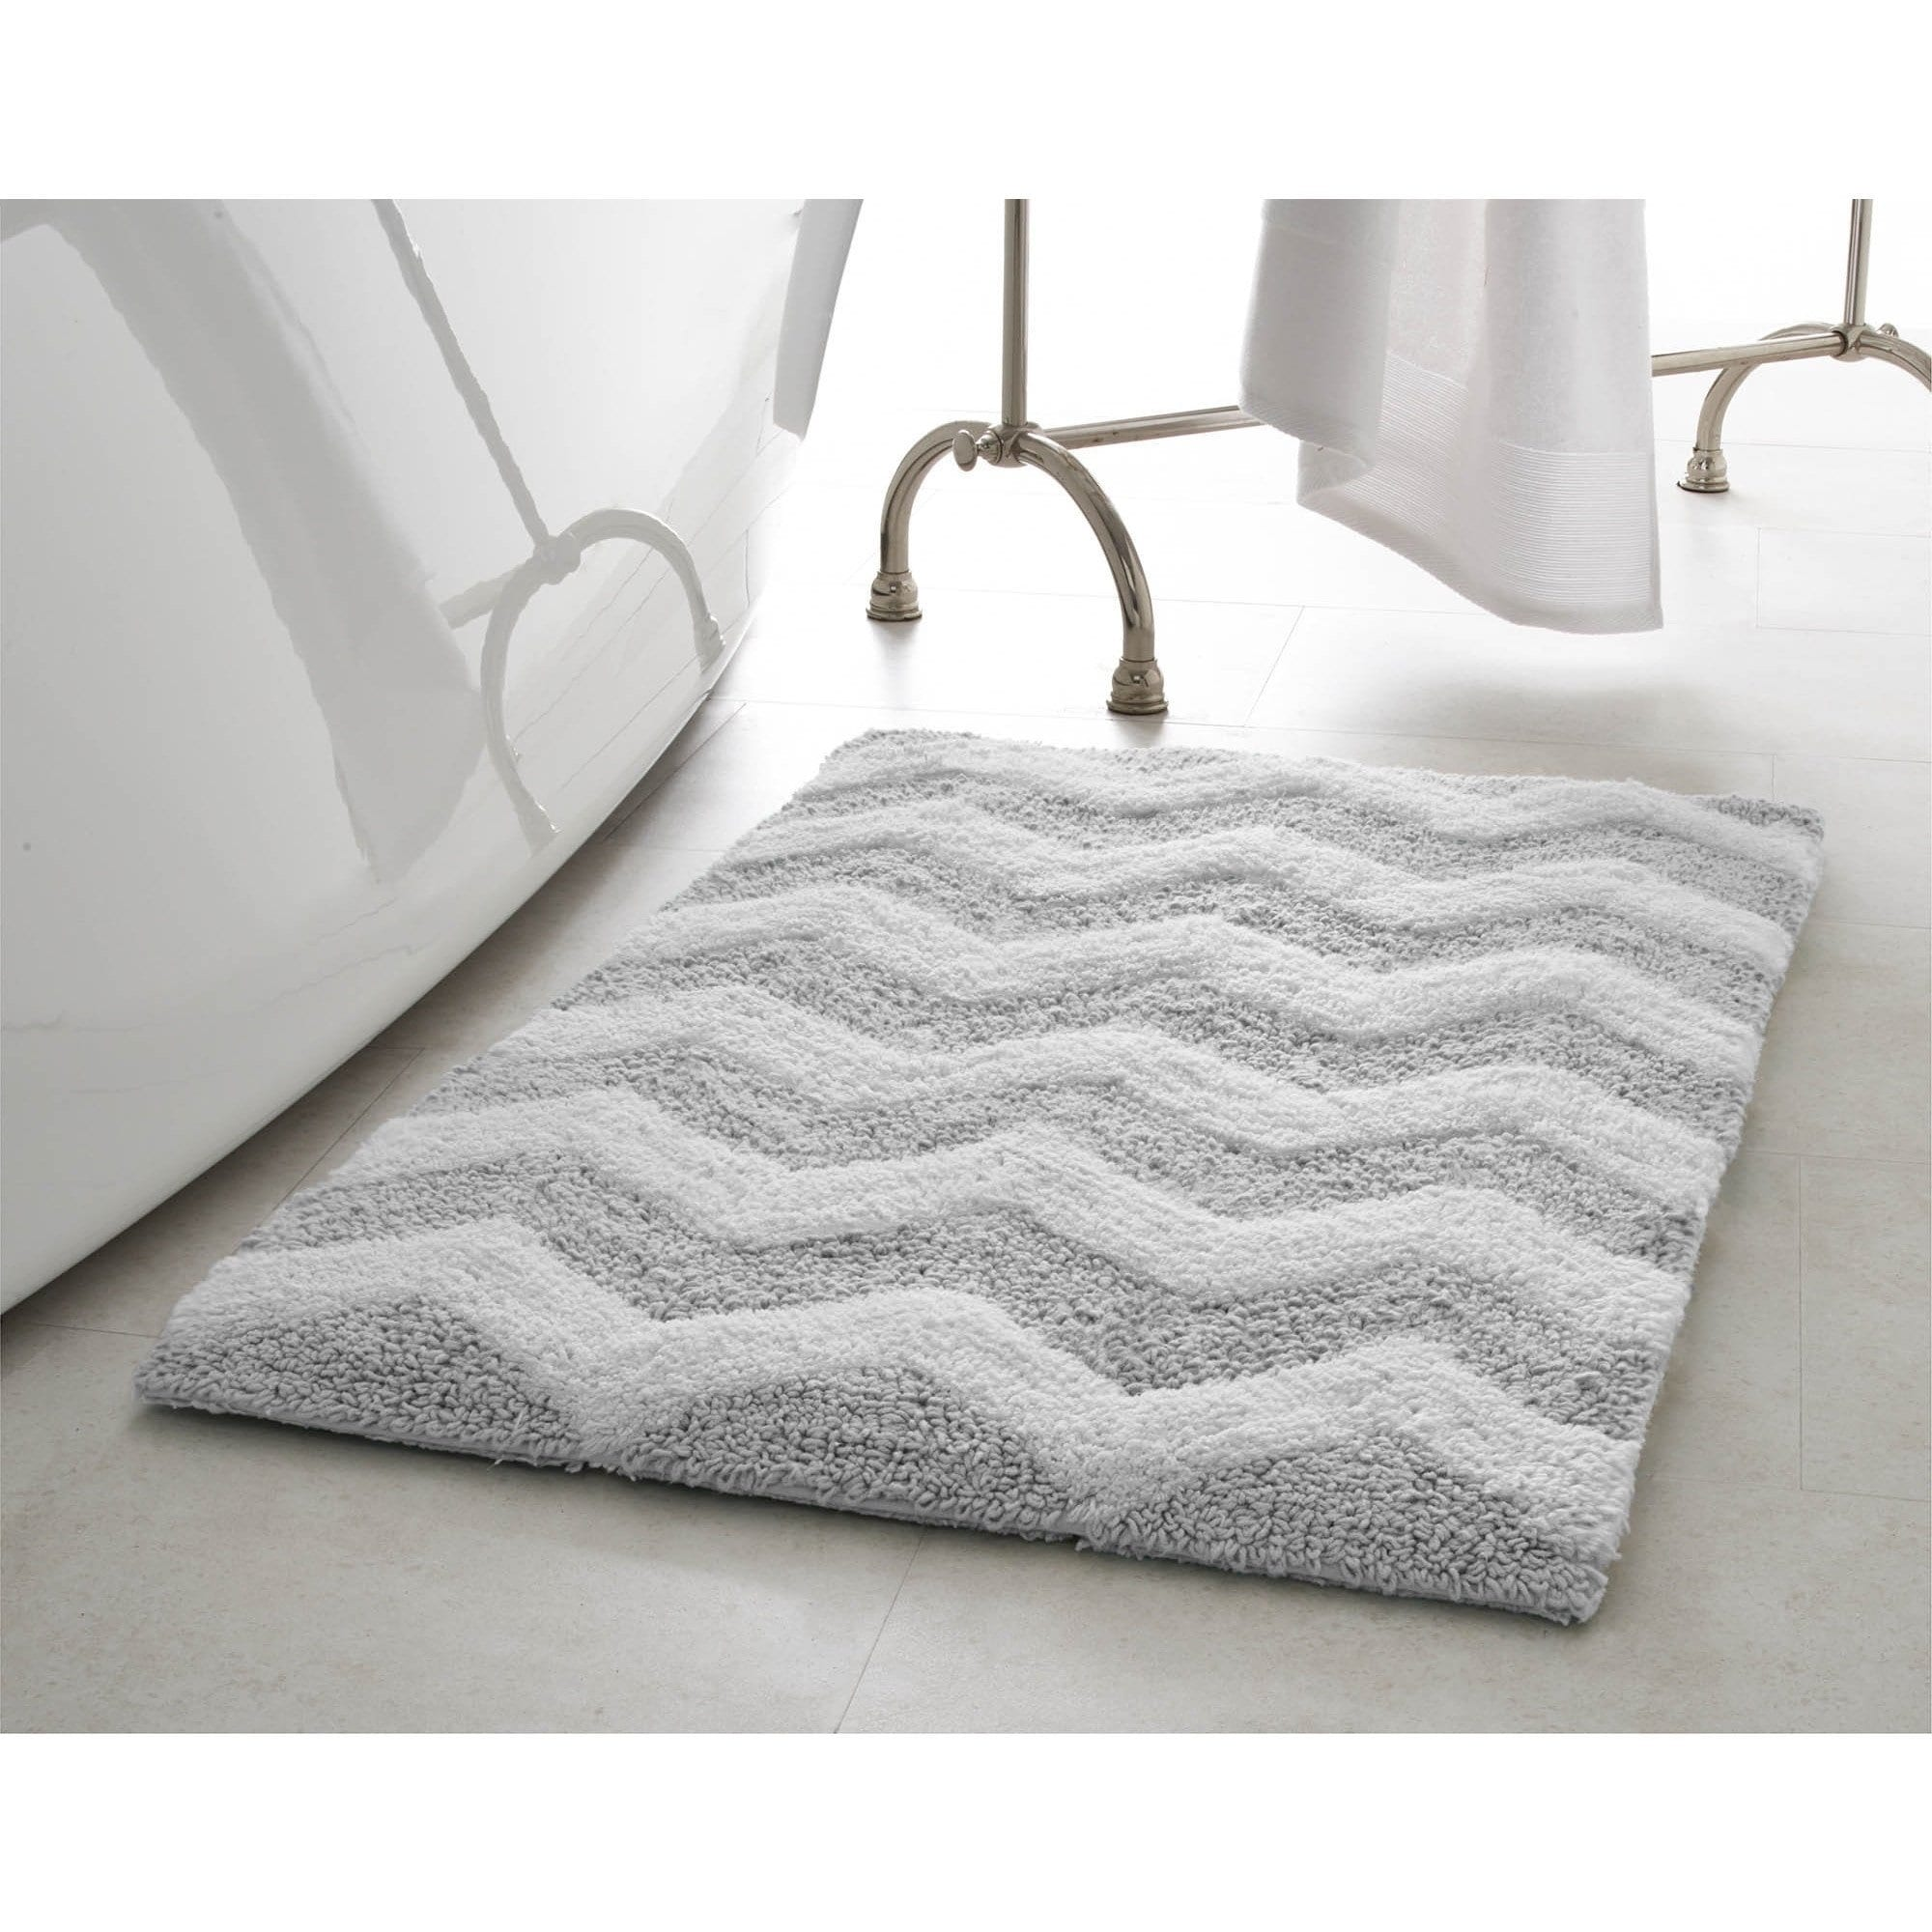 Jean Pierre Reversible Cotton Zigzag 2 Piece Bath Mat Set Bath Mat Sets Plush Bath Mats Bath Mat